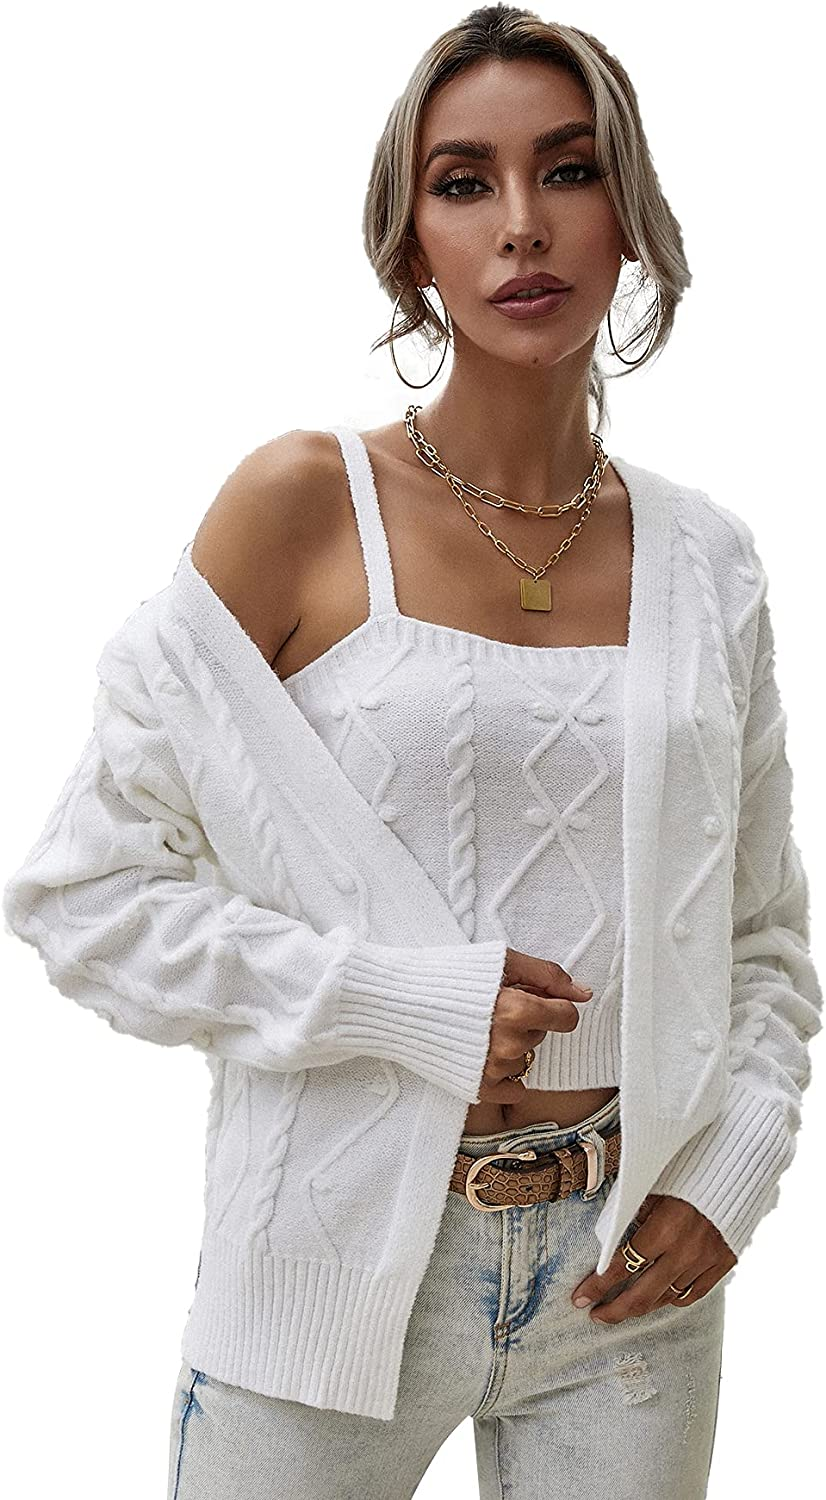 SheIn Women's Button Up Cable Knit Crop Cardigan Sweaters Pullover Coat with Cami Set